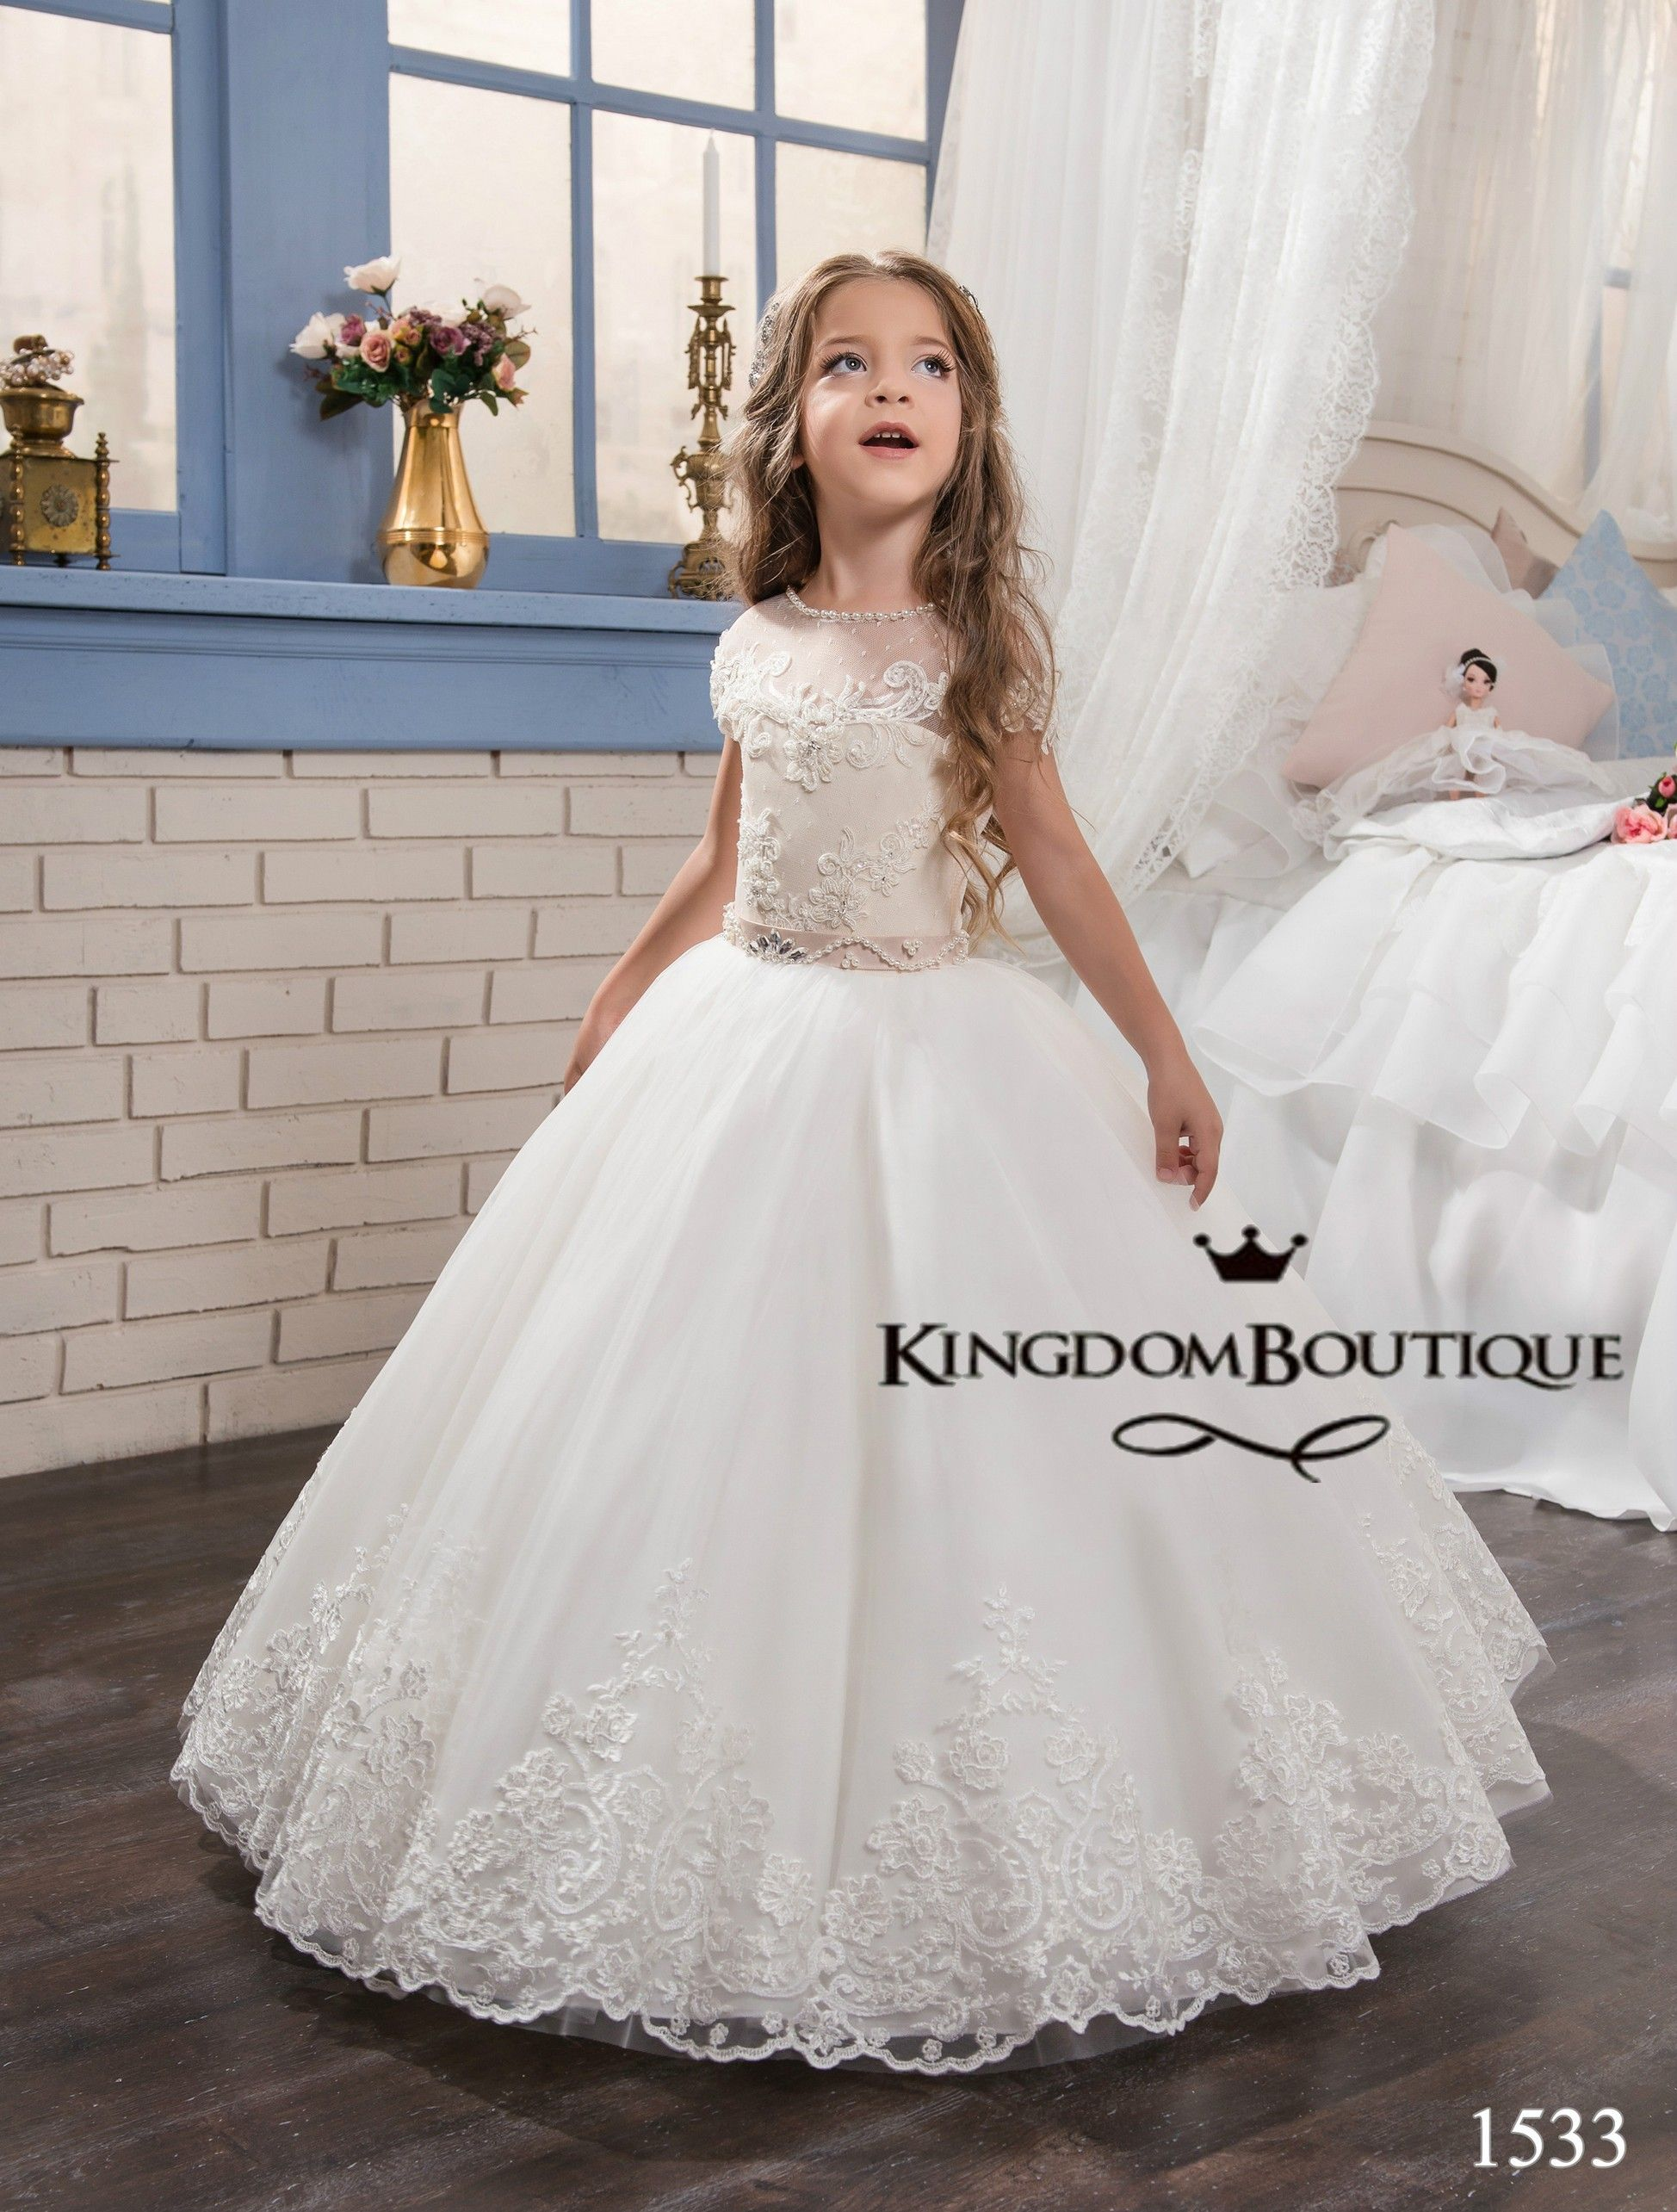 258735d5f Cappuccino Kingdom Boutique children's gowns for special events. Sleeping  Beauty : Dress 16-1533 - kingdom.boutique Children's Wedding Dresses Flower  Girl ...